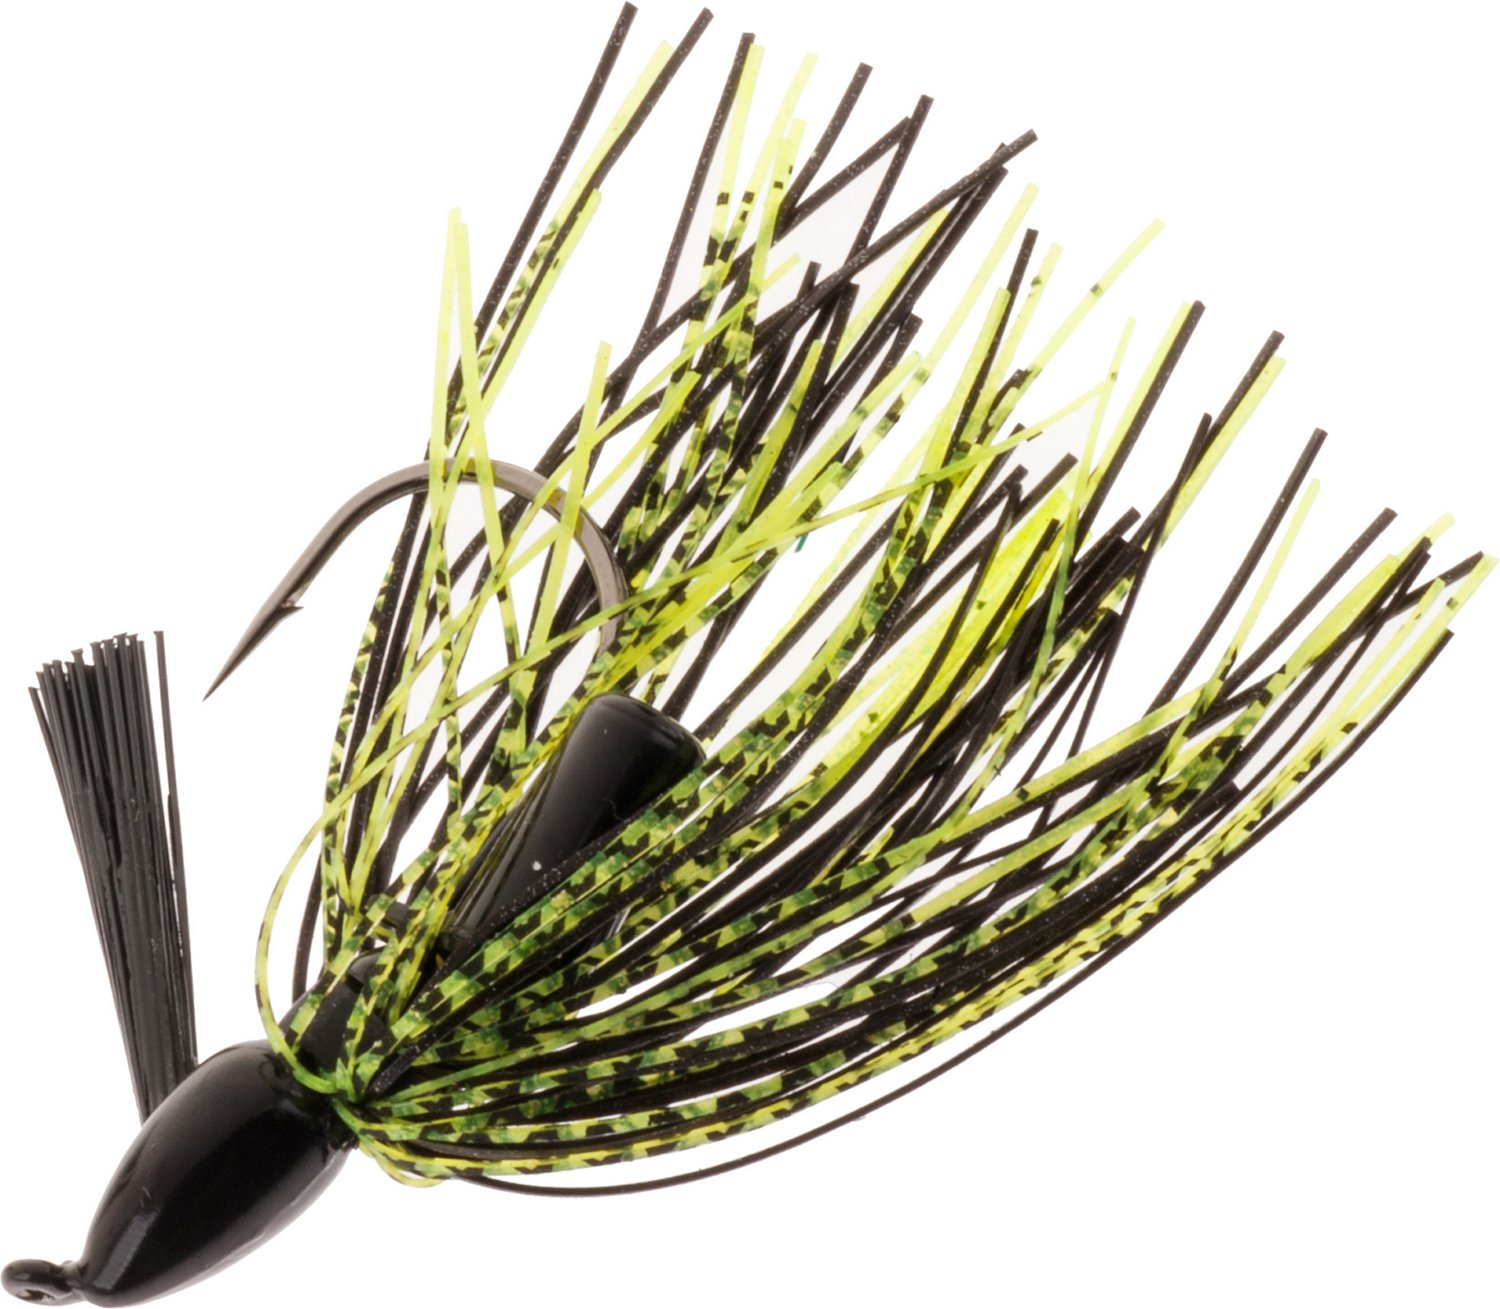 Hoppy's Rattling Brush Bug 3/8 oz. Wire Bait - view number 1